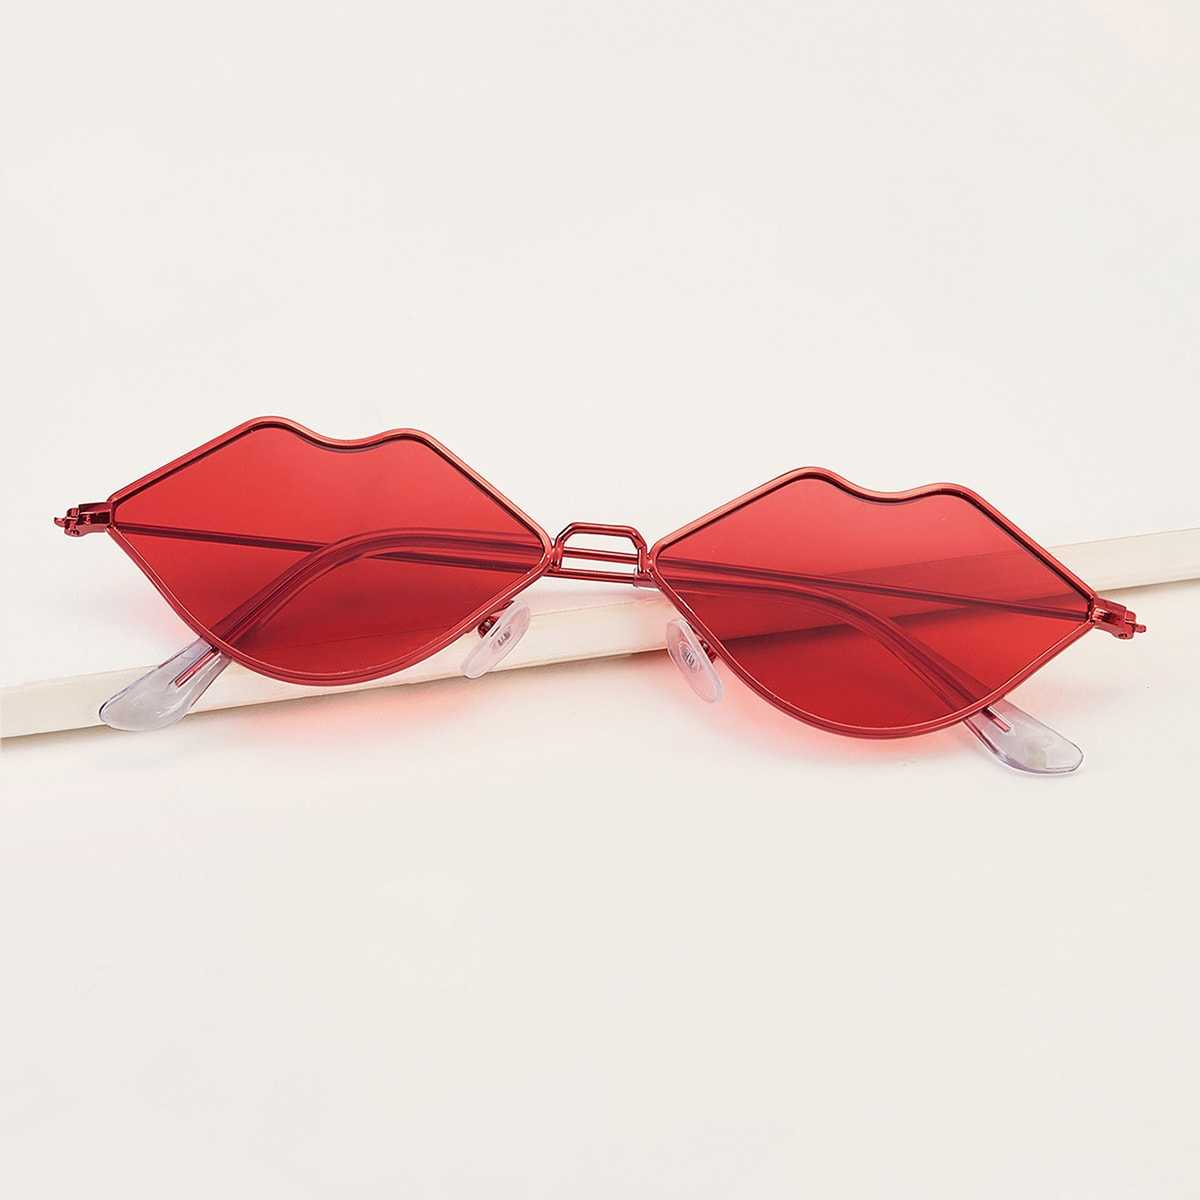 Mouth Design Tinted Lens Sunglasses in Red by ROMWE on GOOFASH